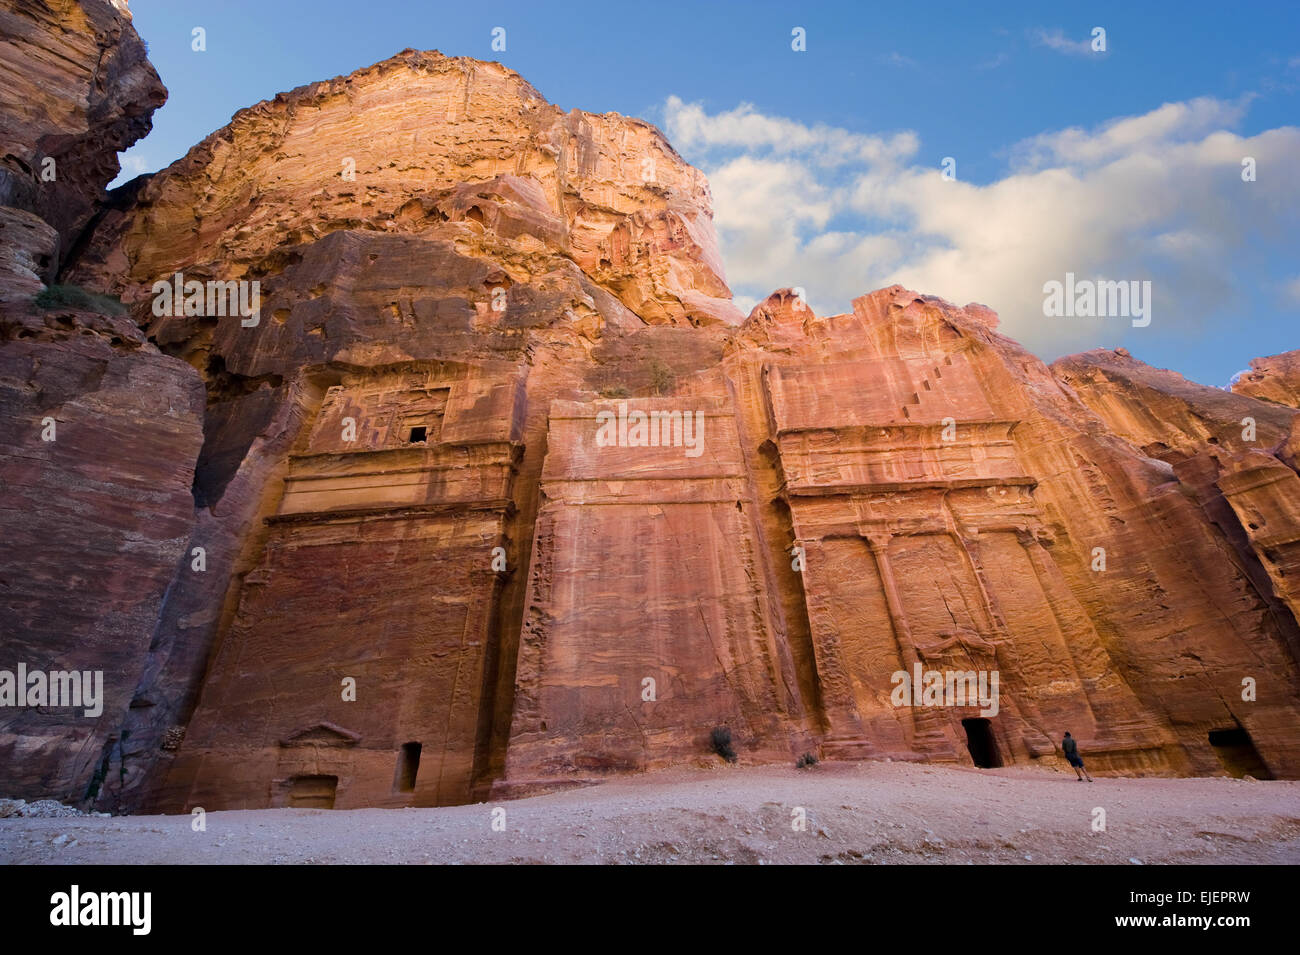 Tombs that are called 'The street of facades' in Petra in Jordan - Stock Image